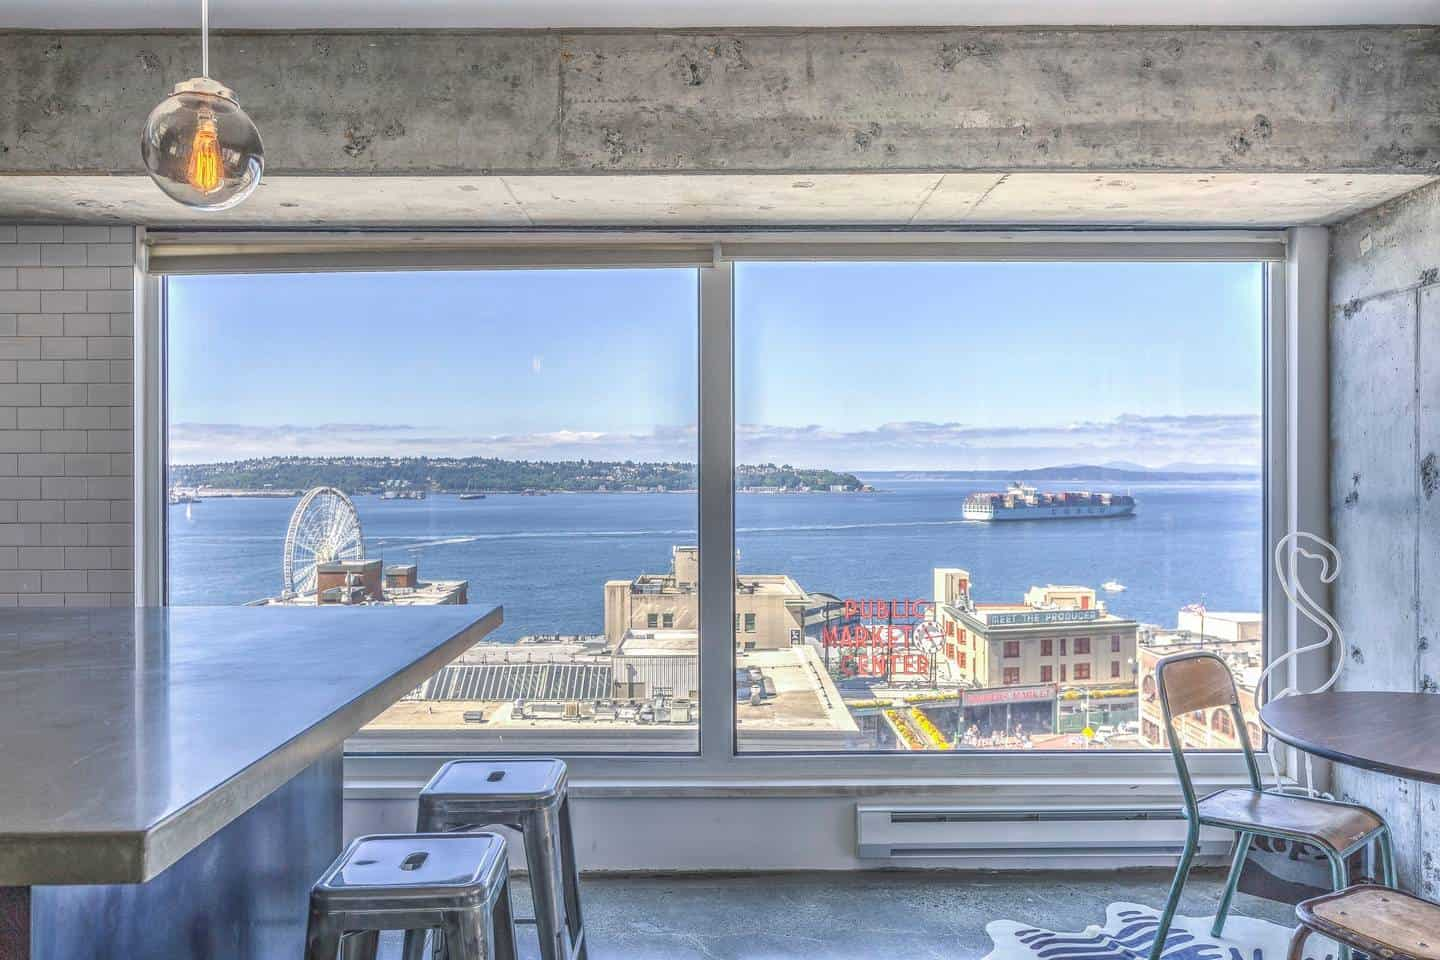 Airbnb Seattle Pike Place Market - those views are gorgeous!